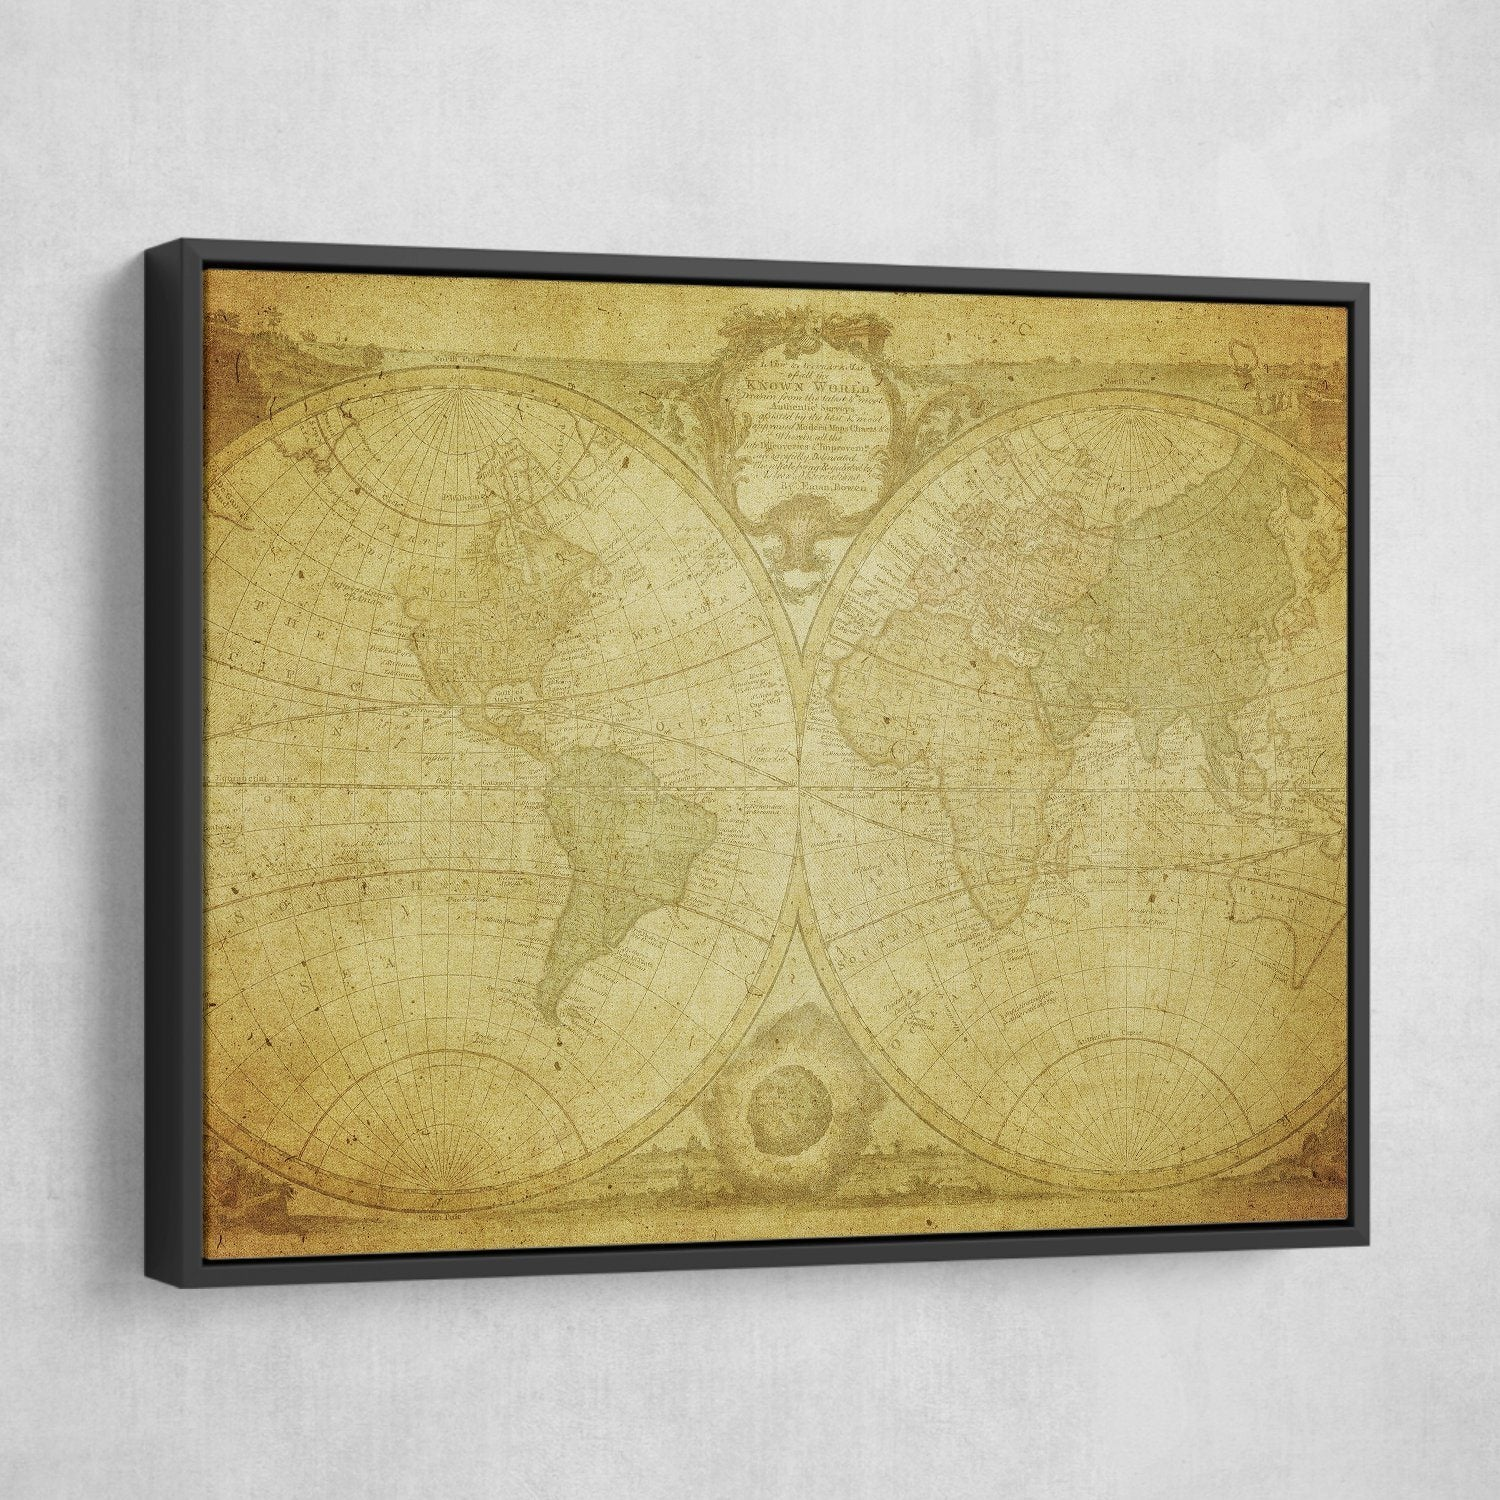 framed Antique World Map wall art